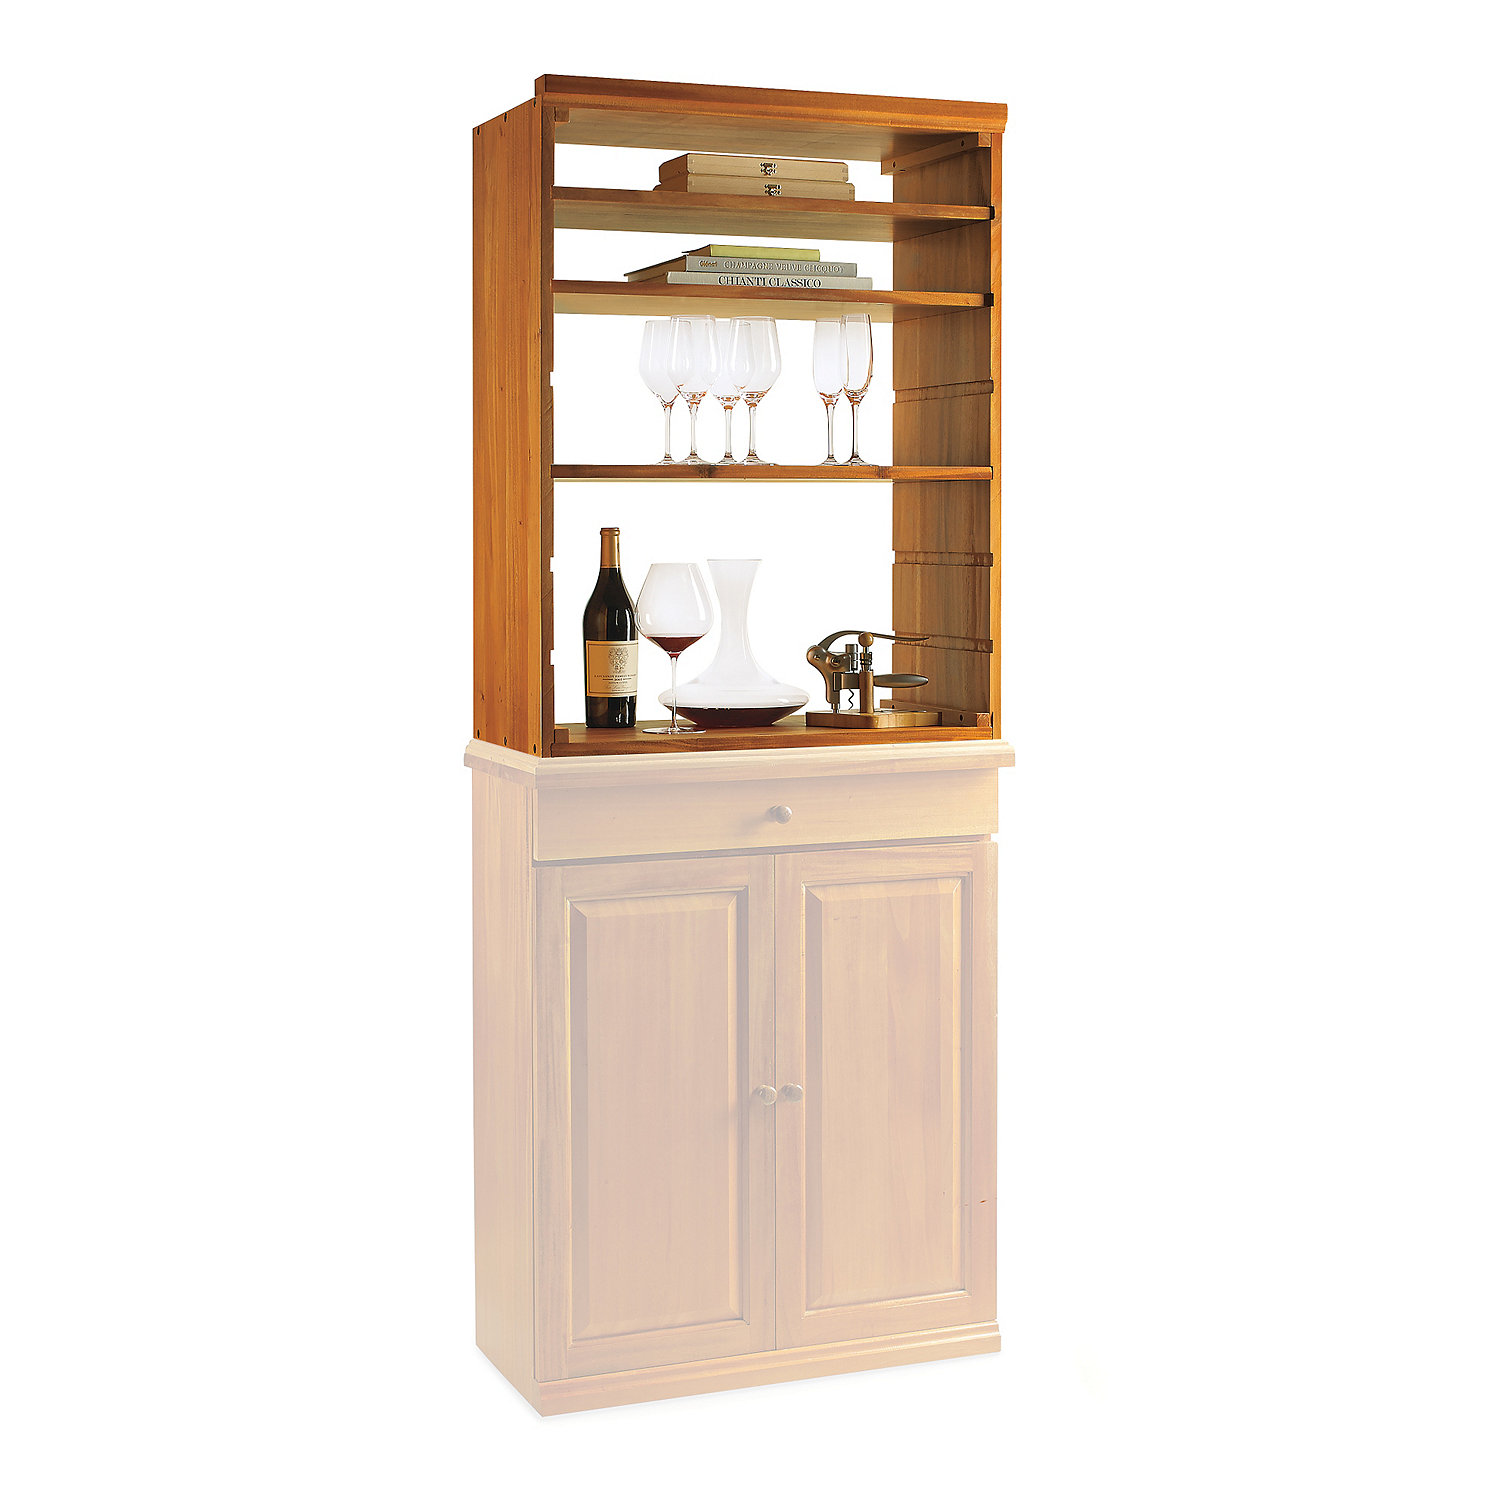 34132 - Eliminate Your Fears And Doubts About Hutch With Wine Rack